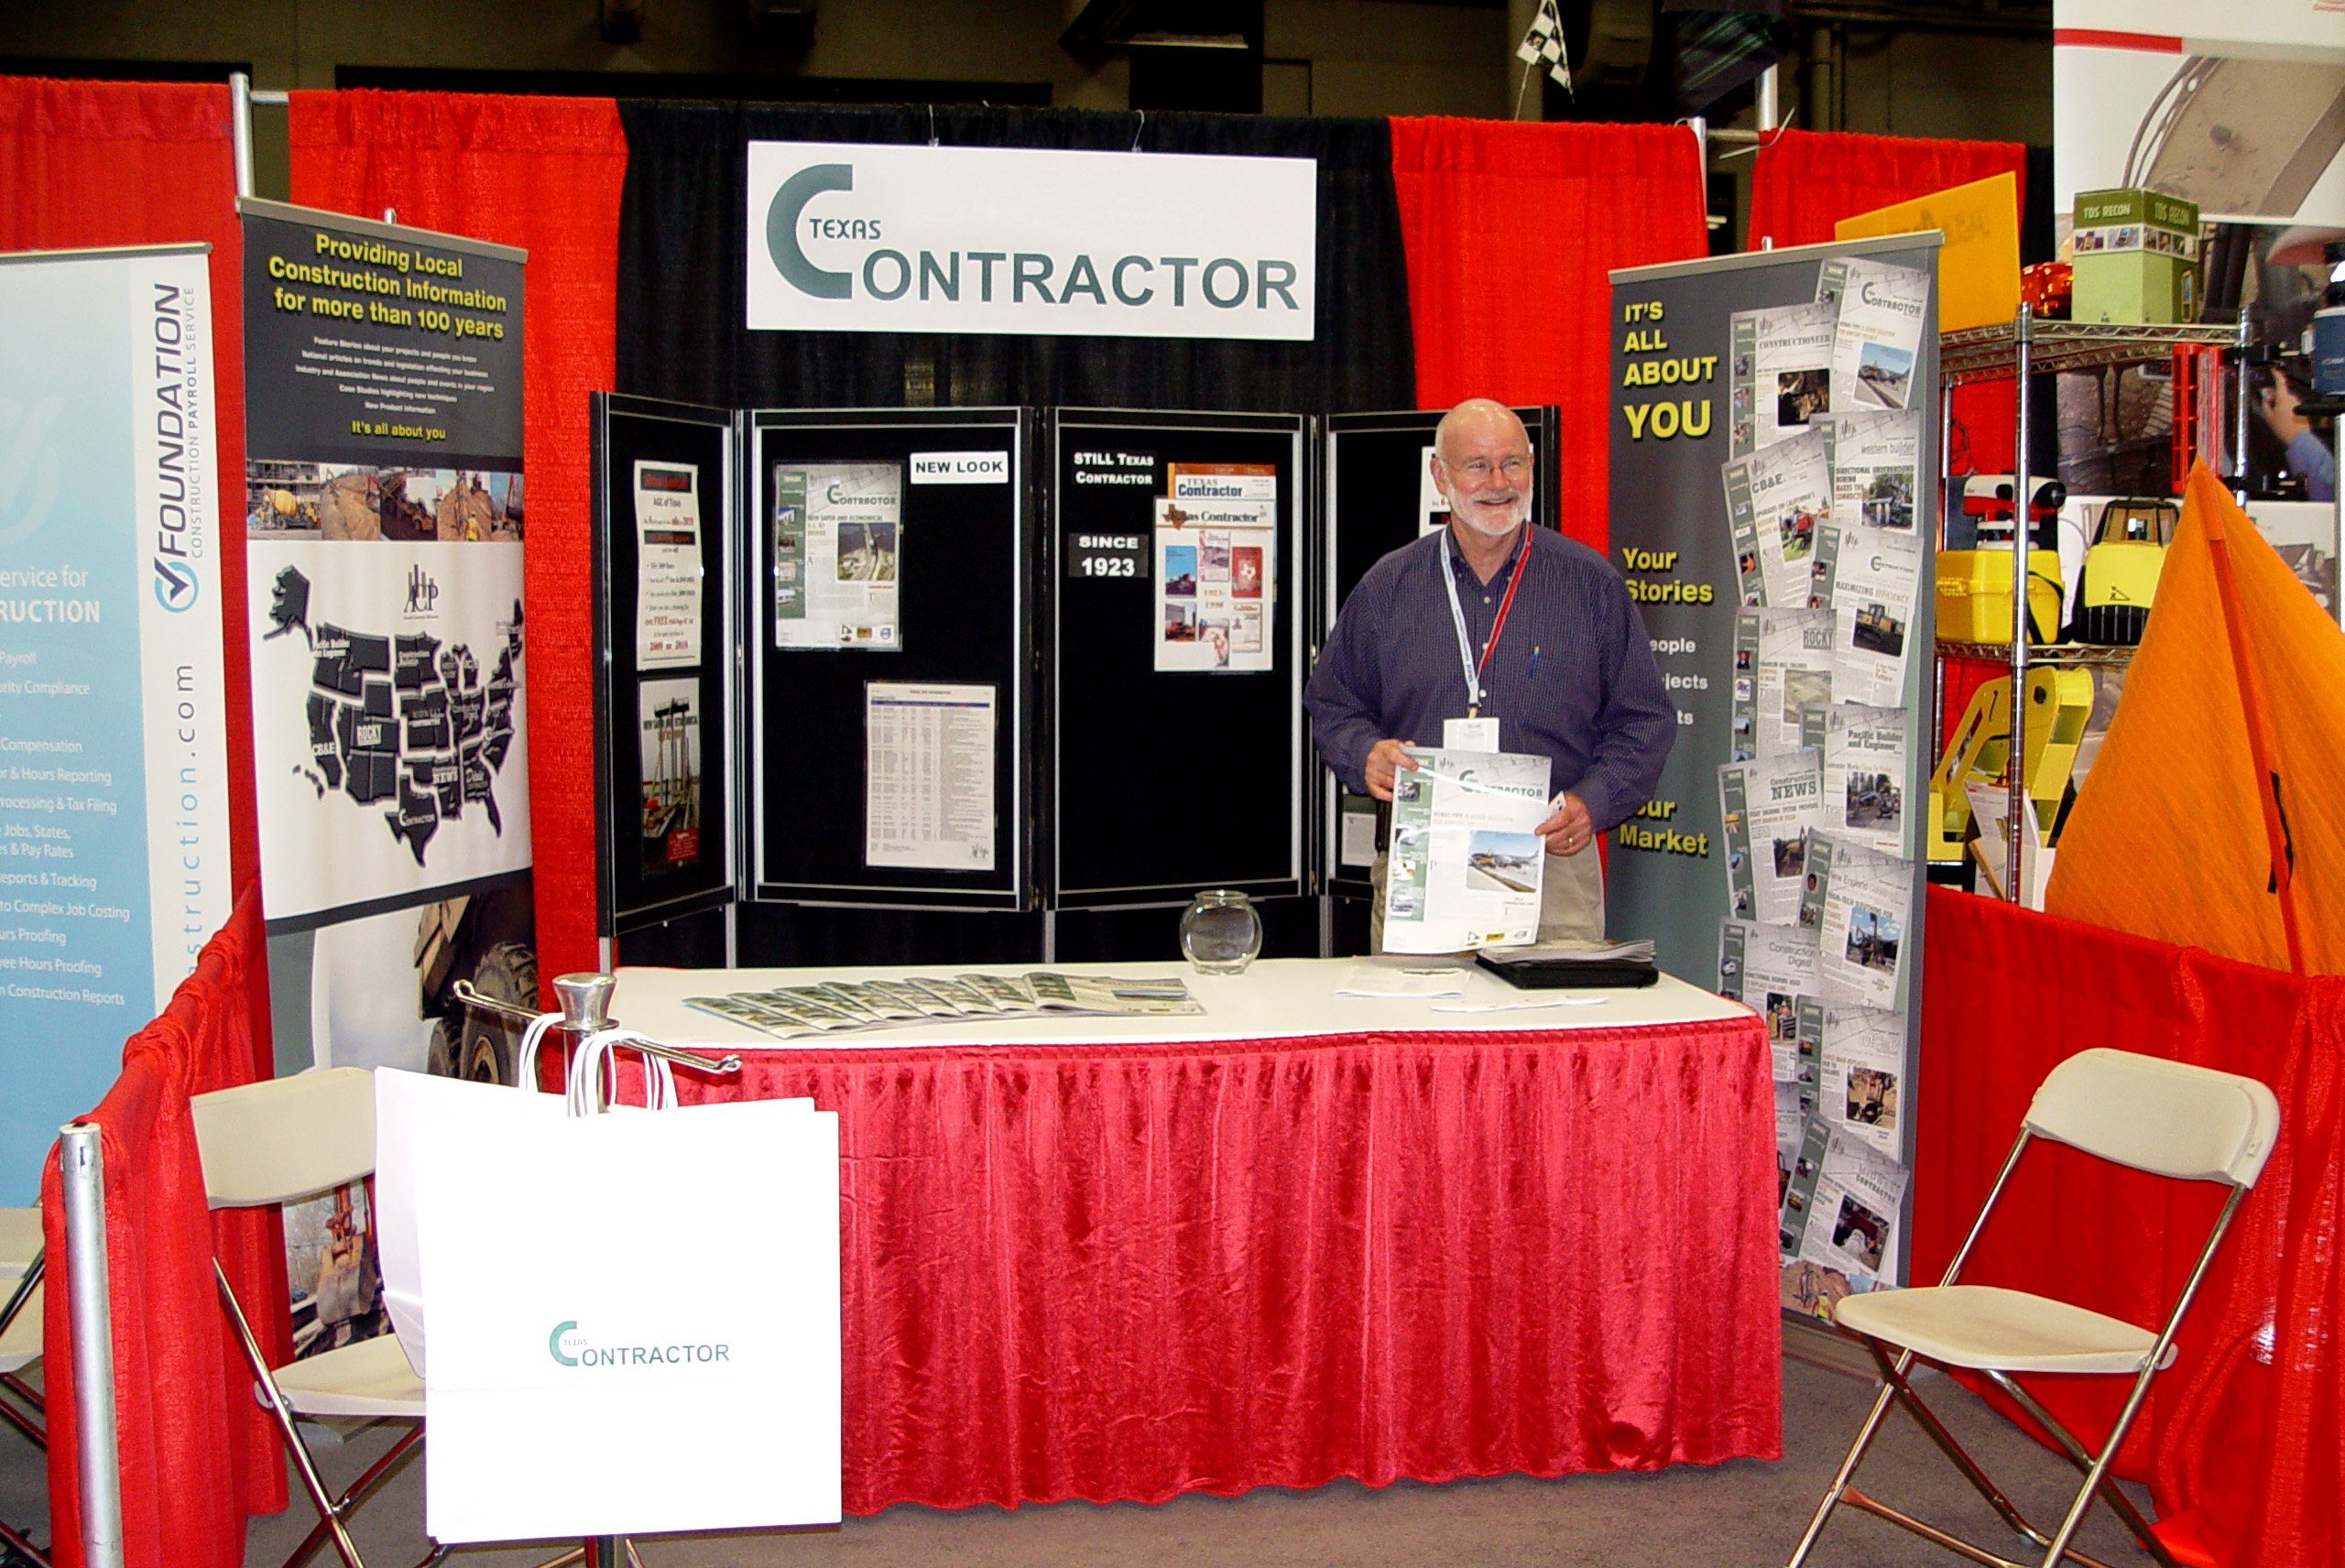 Trade Show Booth Builders : Texas contractor at industry show « site k construction zone